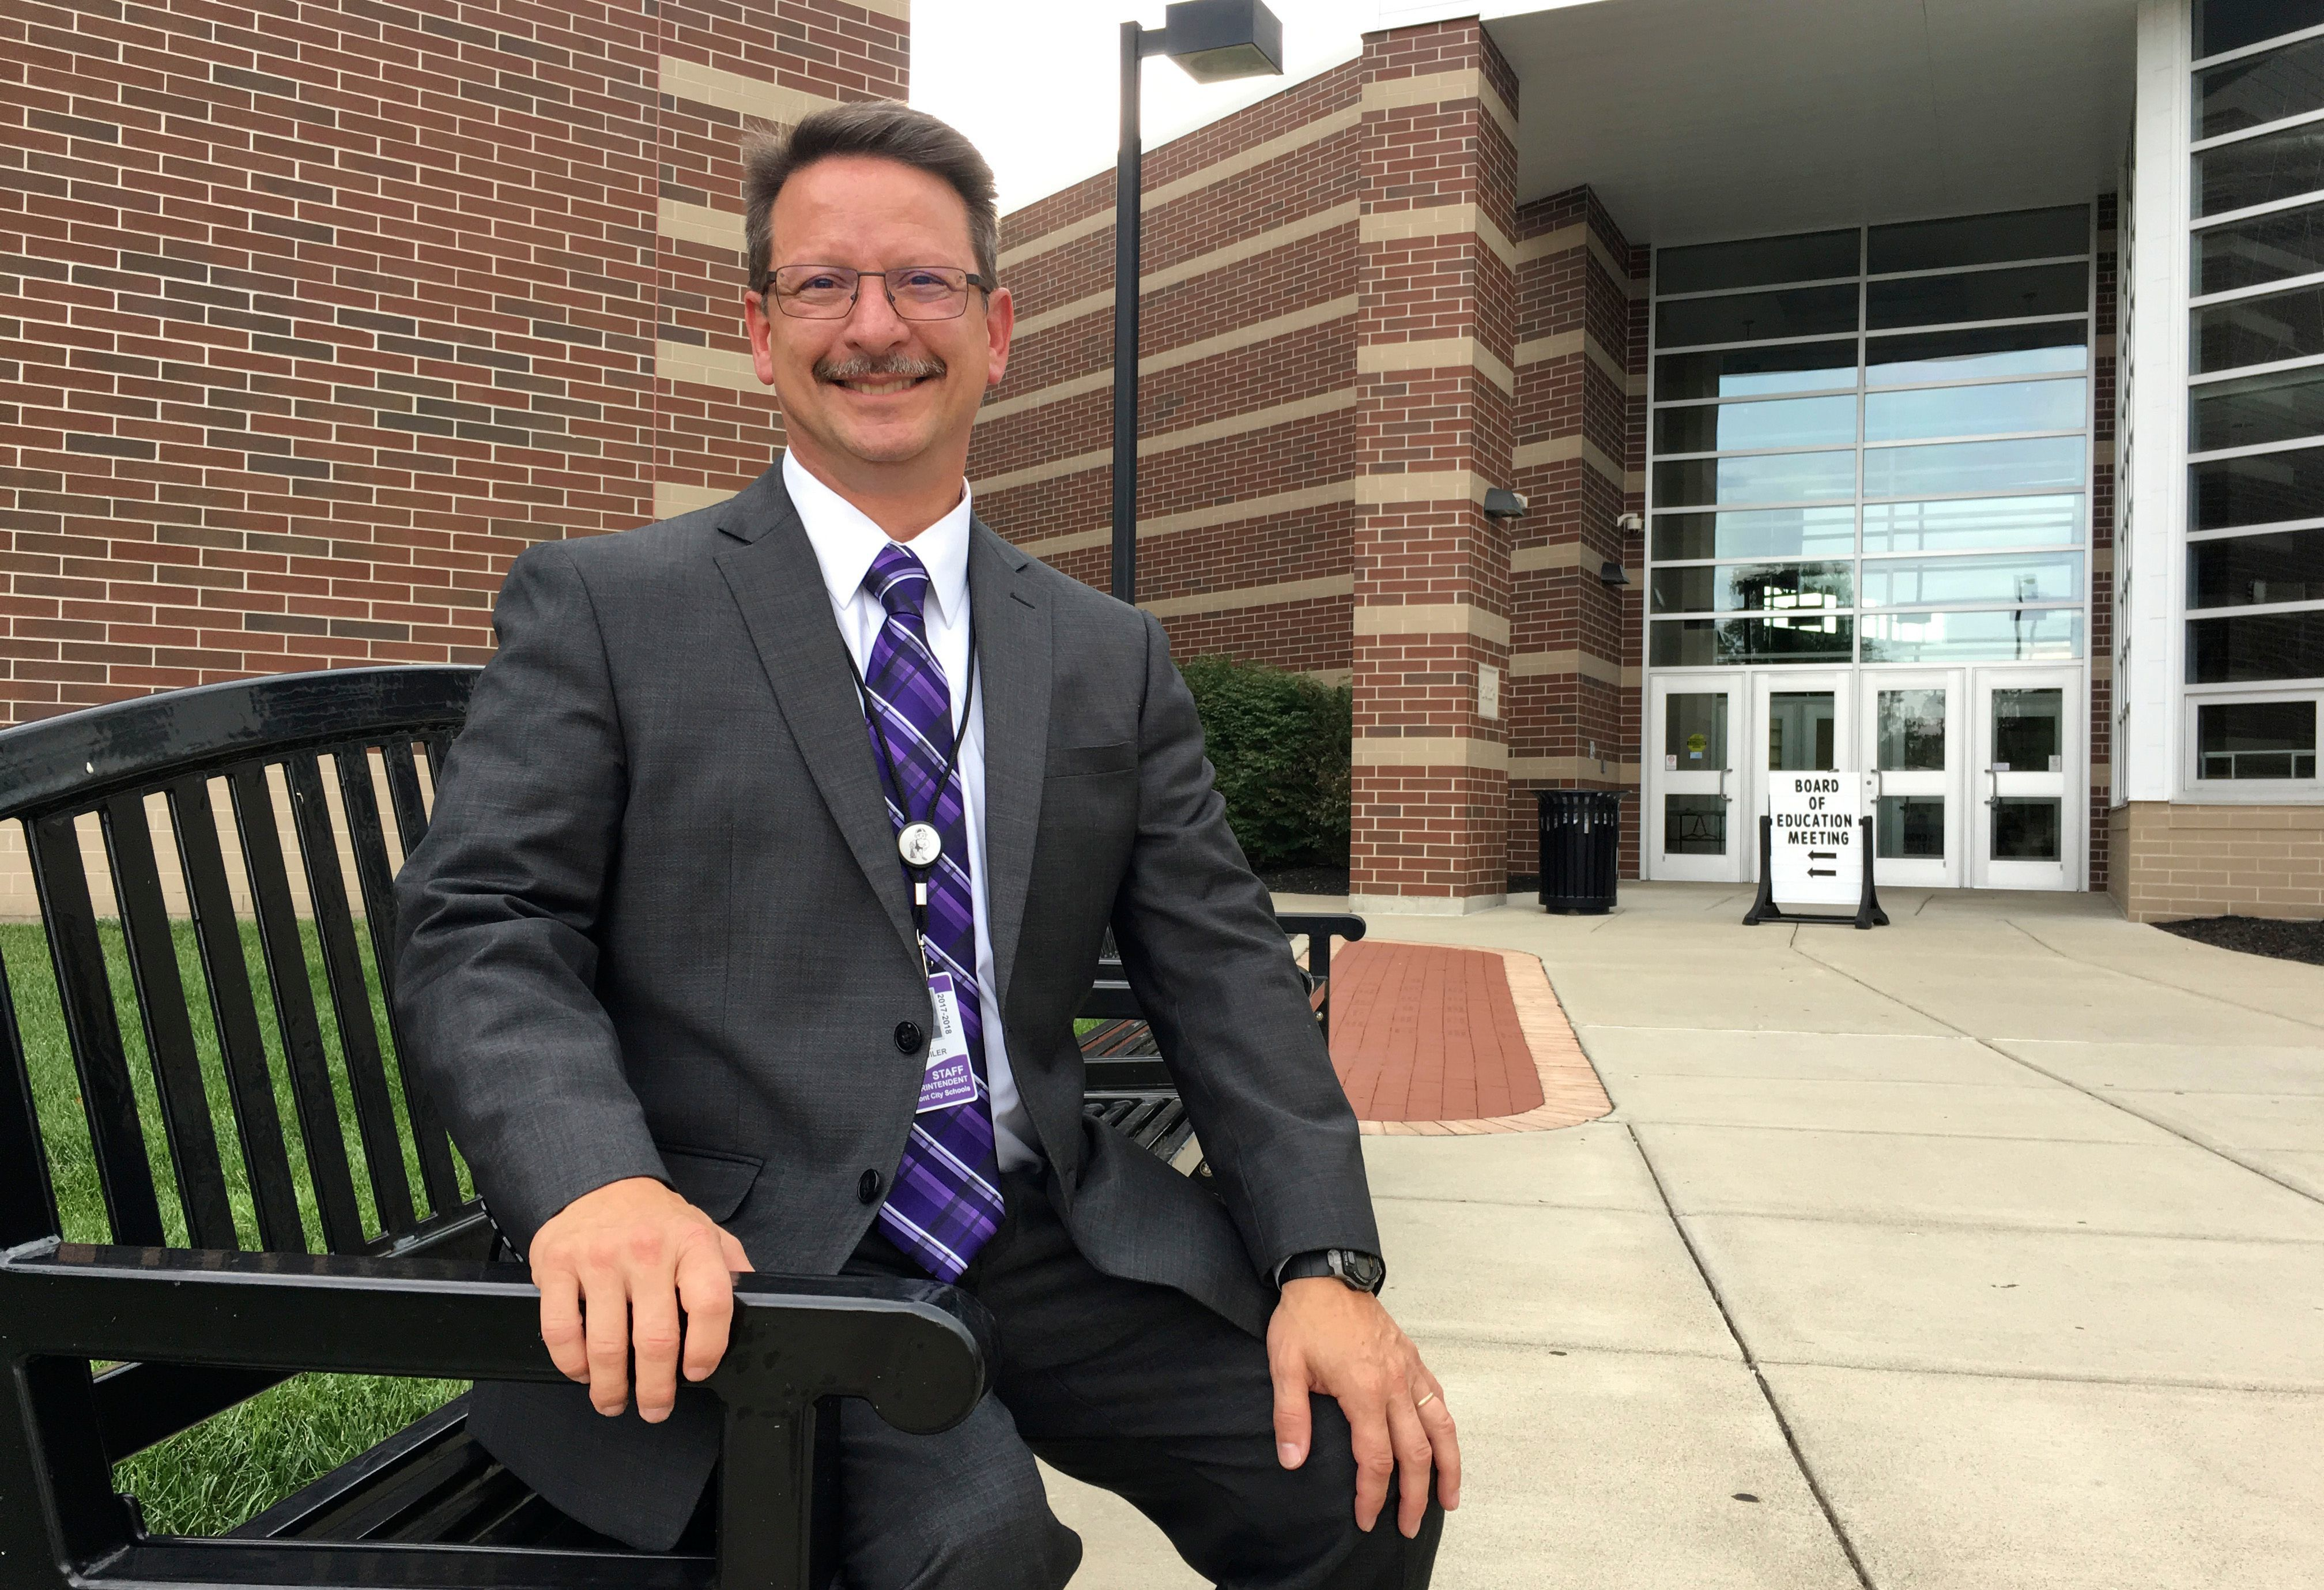 Jon Detwiler, Fremont City Schools superintendent, said he hopes to have a plan next week to release to the public regarding the reopening of the district's schools this fall.